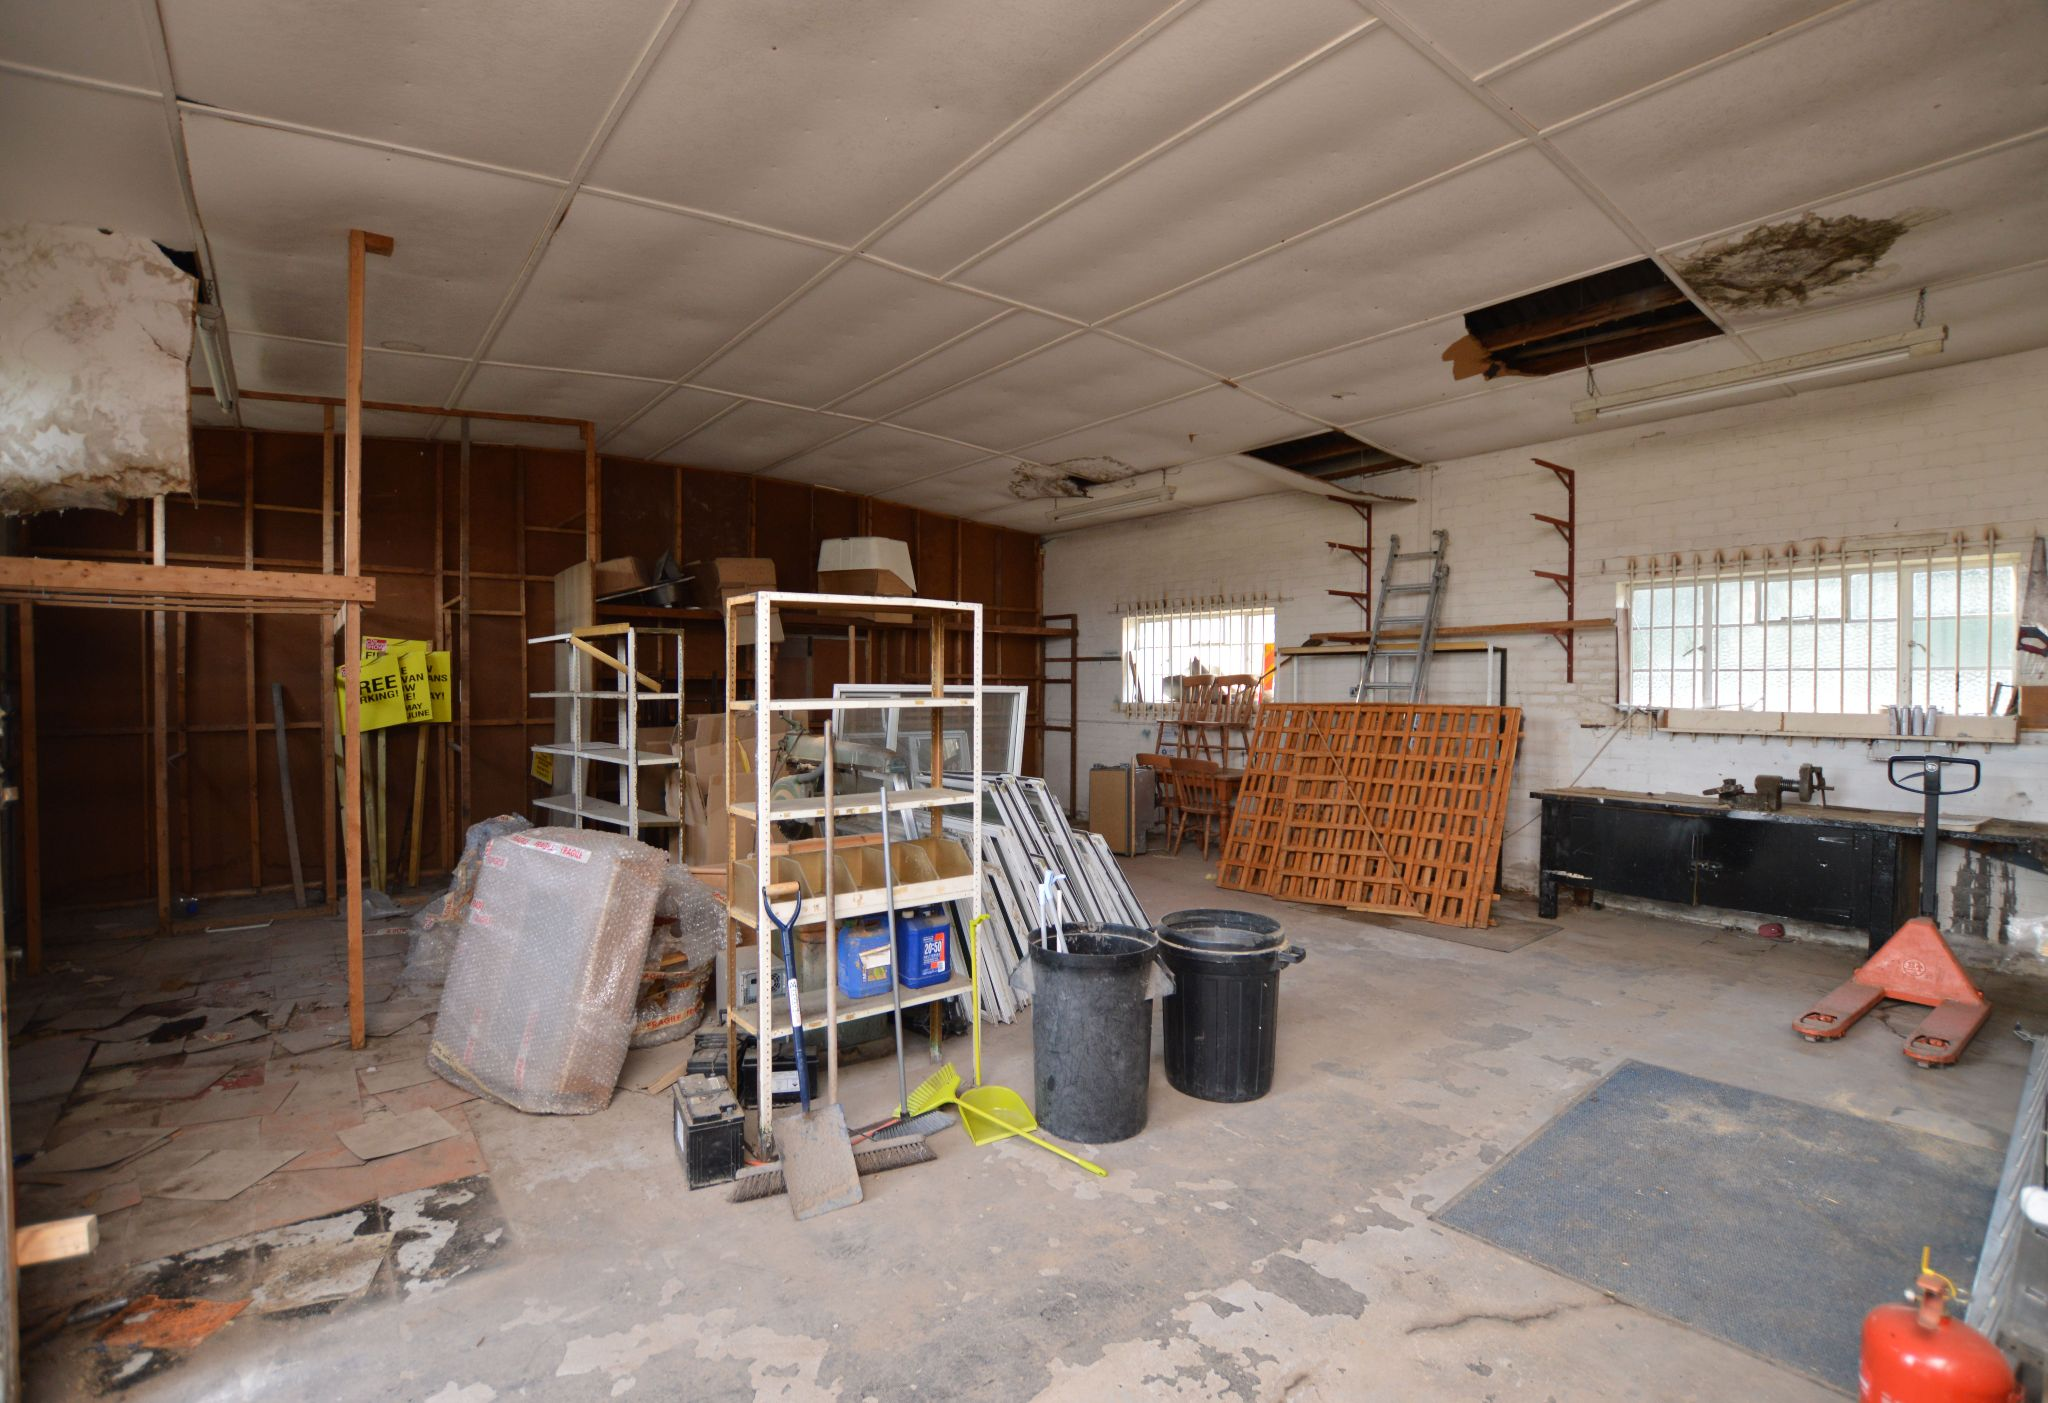 Land For Sale in Holywell - Workshop View 2